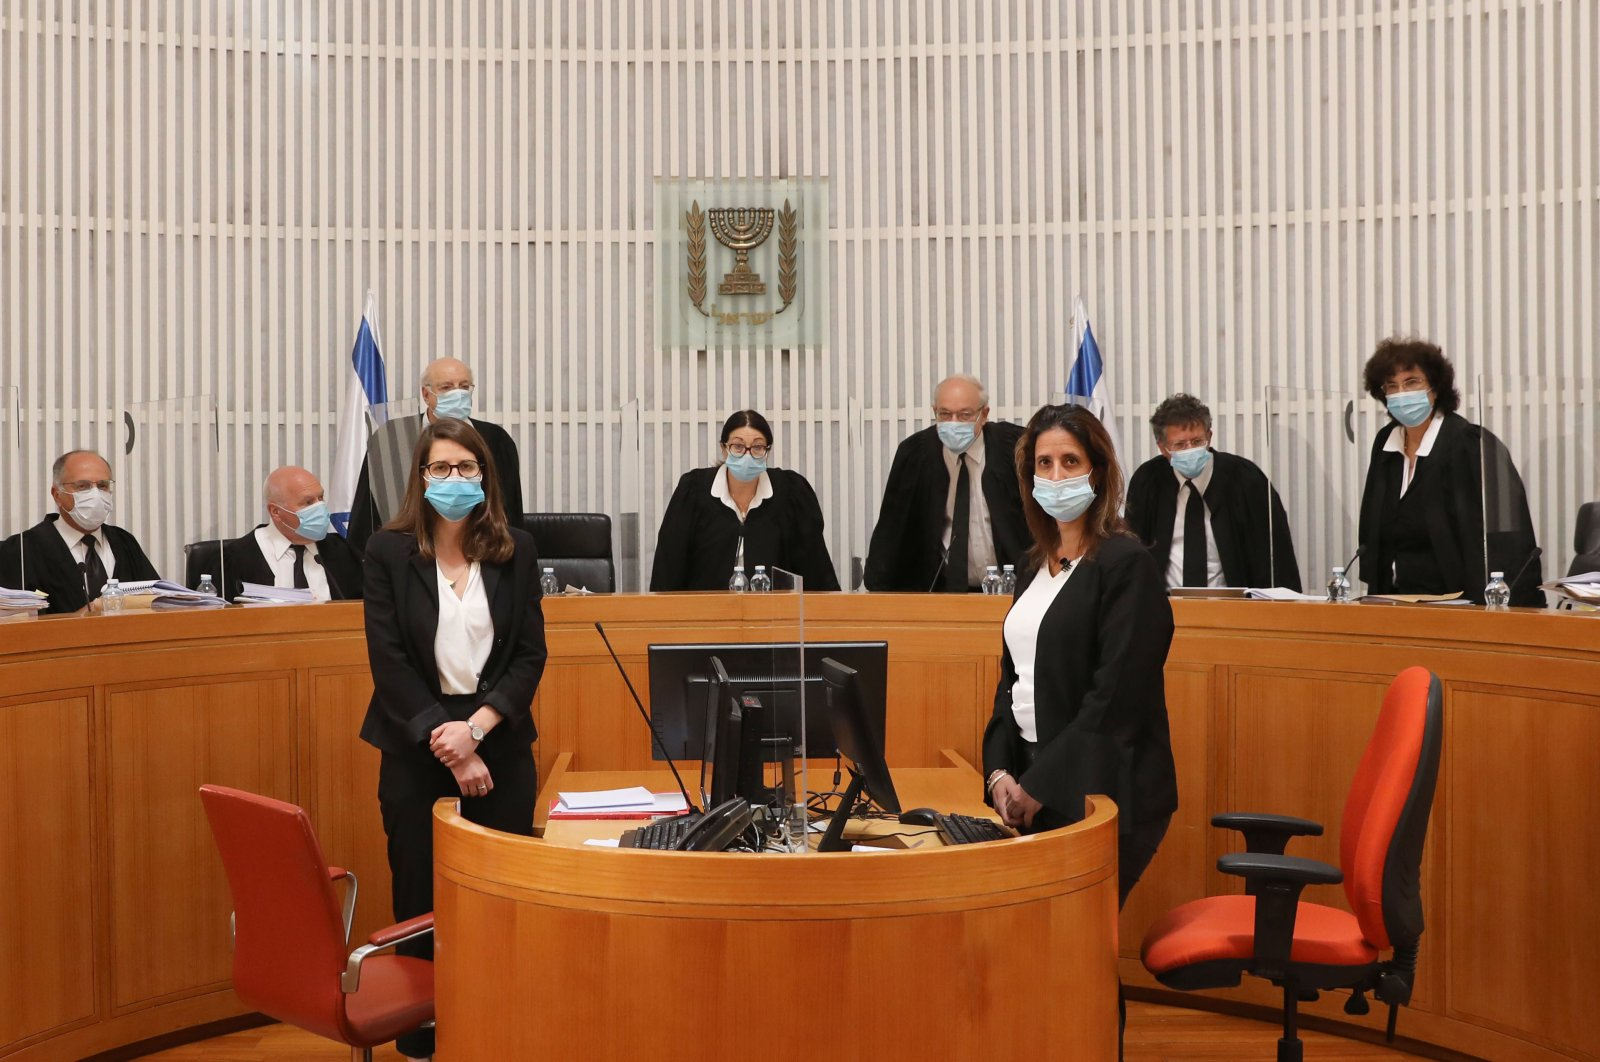 Judges and personnel of the Israeli Supreme Court wearing face masks against the coronavirus Covid-19, attend a session on May 4, 2020 at the Supreme Court in Jerusalem. (AFP Photo)